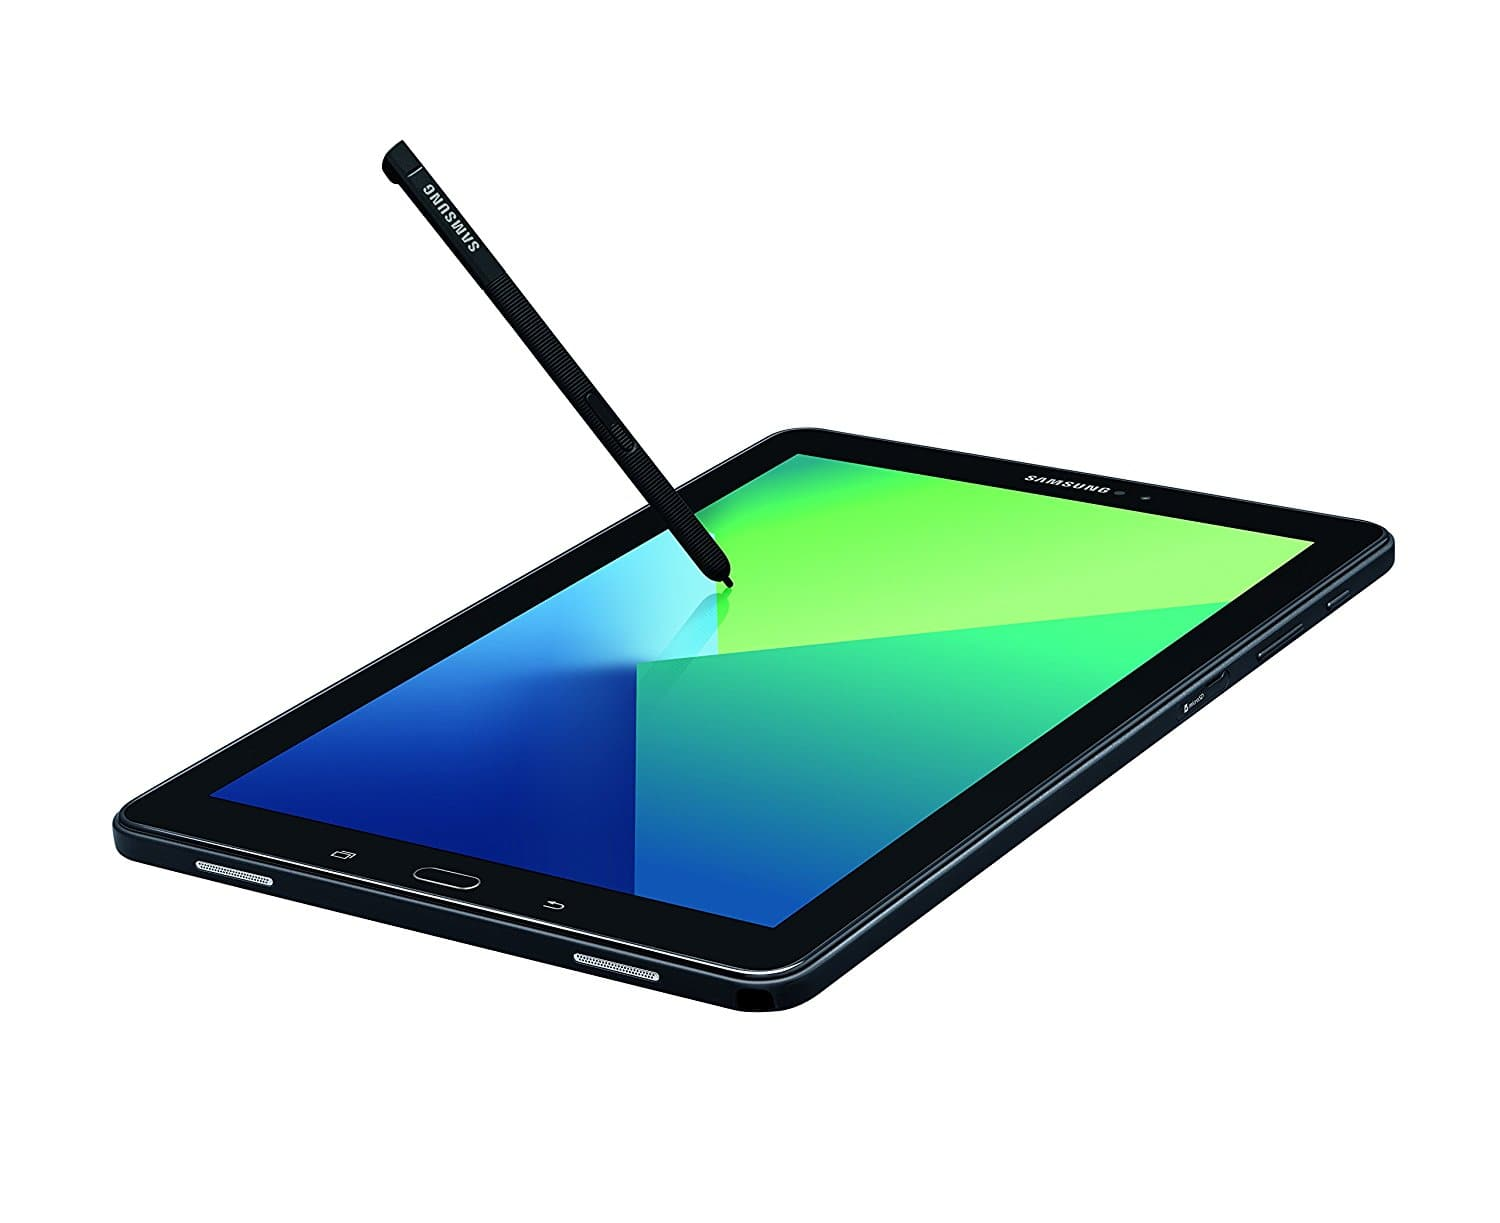 Samsung Galaxy Tab A 10.1 with S-Pen (Oct 2016 Model) - $249.99 @ Amazon